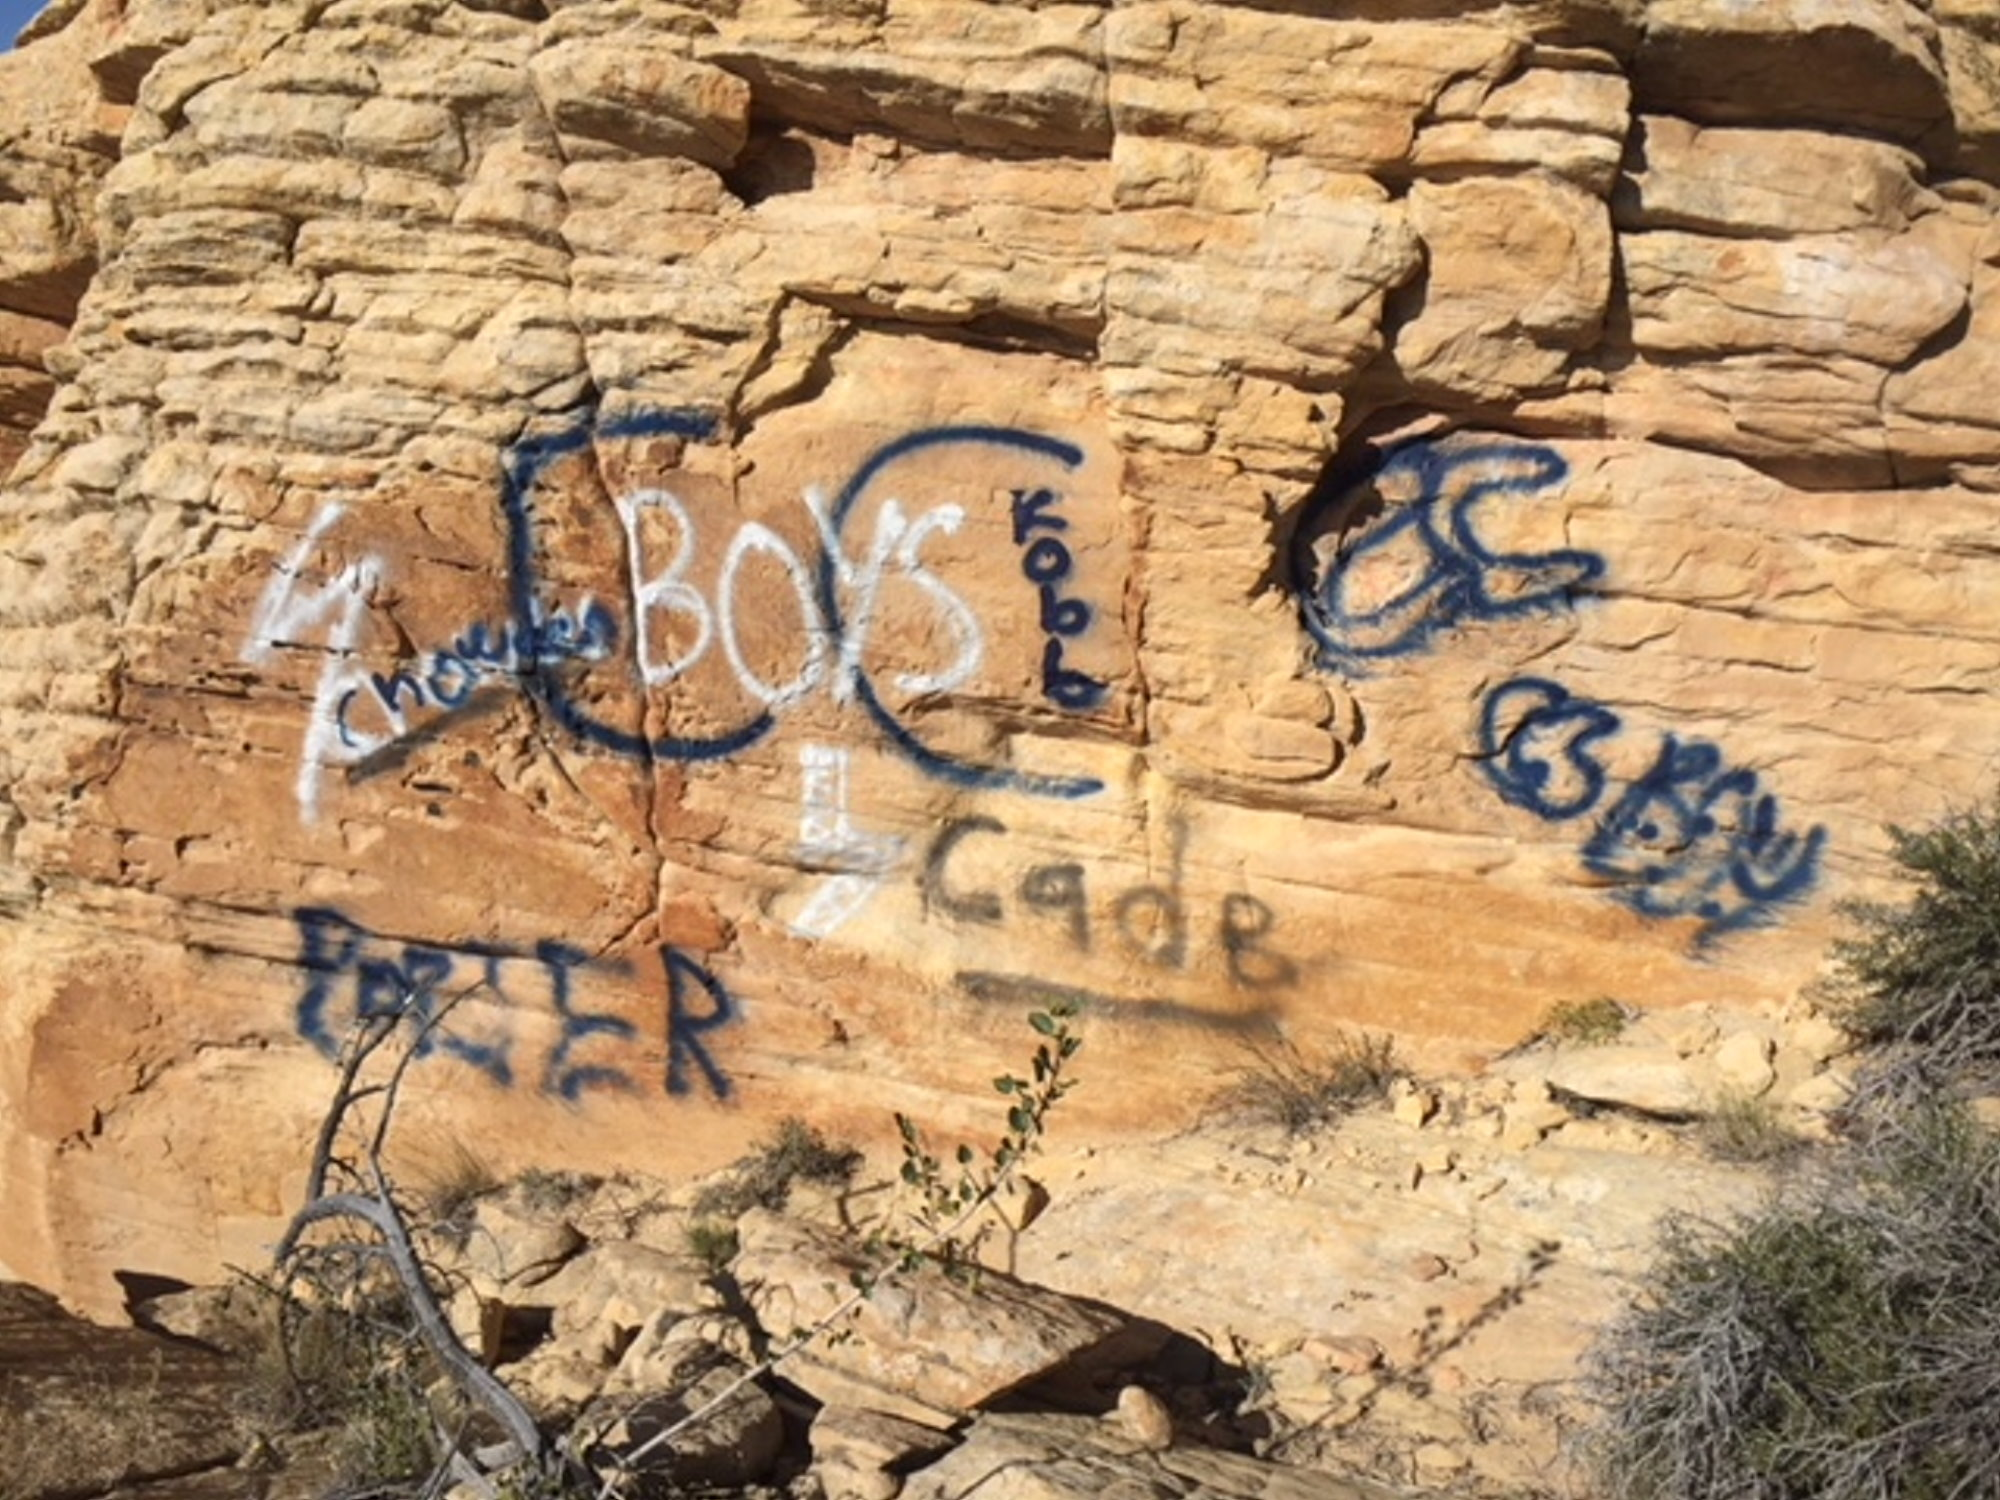 snow canyon state park official says vandalism was premeditated